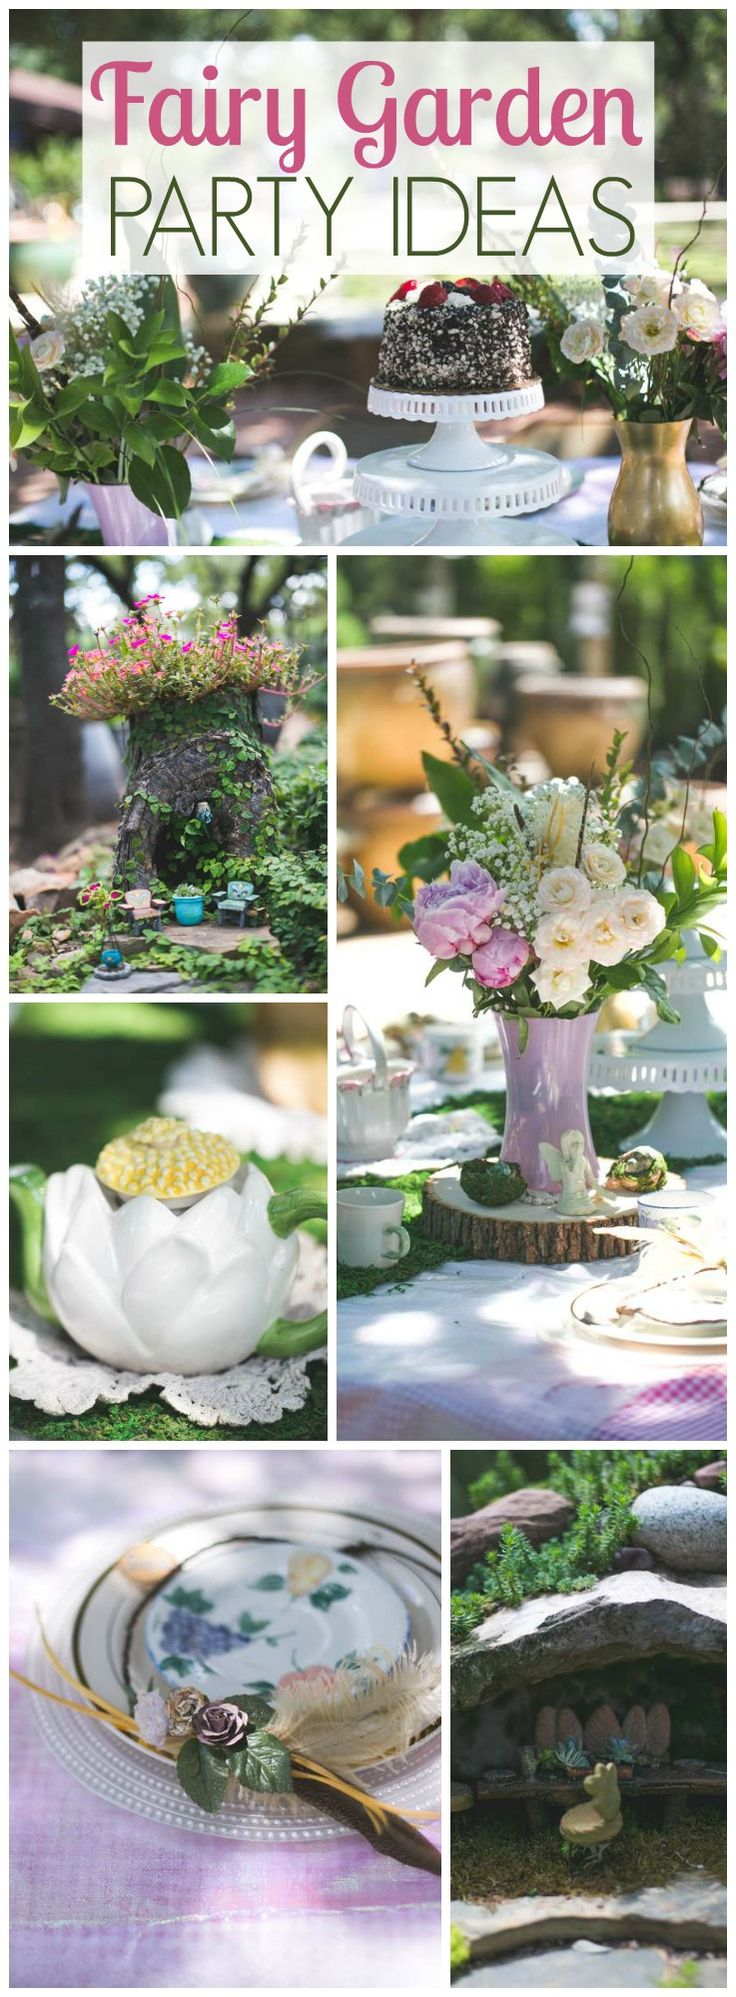 25+ Best Ideas About Garden Party Themes On Pinterest